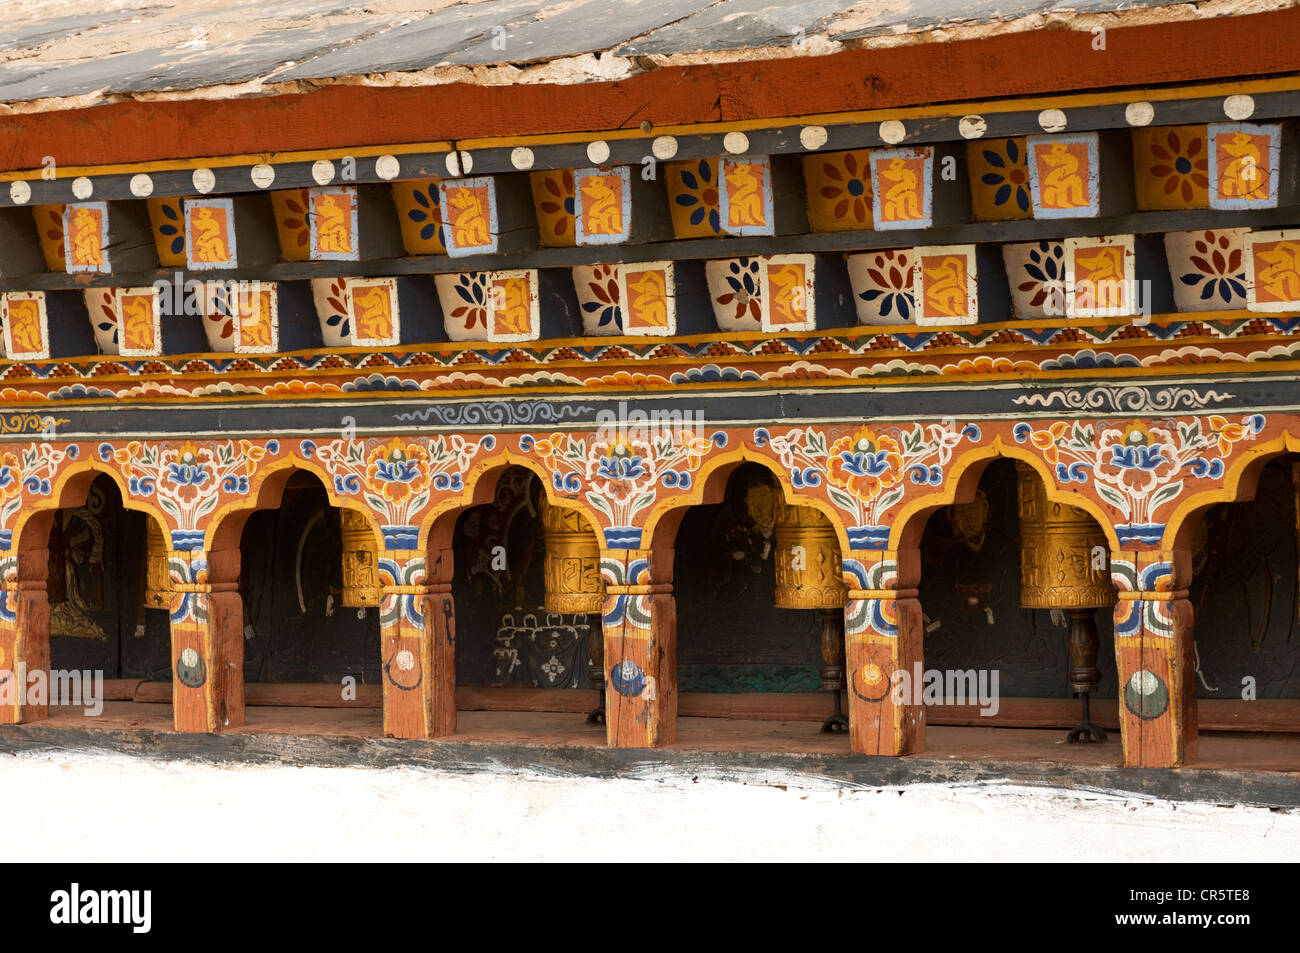 Buddhist prayer wheels in the Chimi Lhakhang fertility temple, Lobesa, Bhutan, South Asia - Stock Image